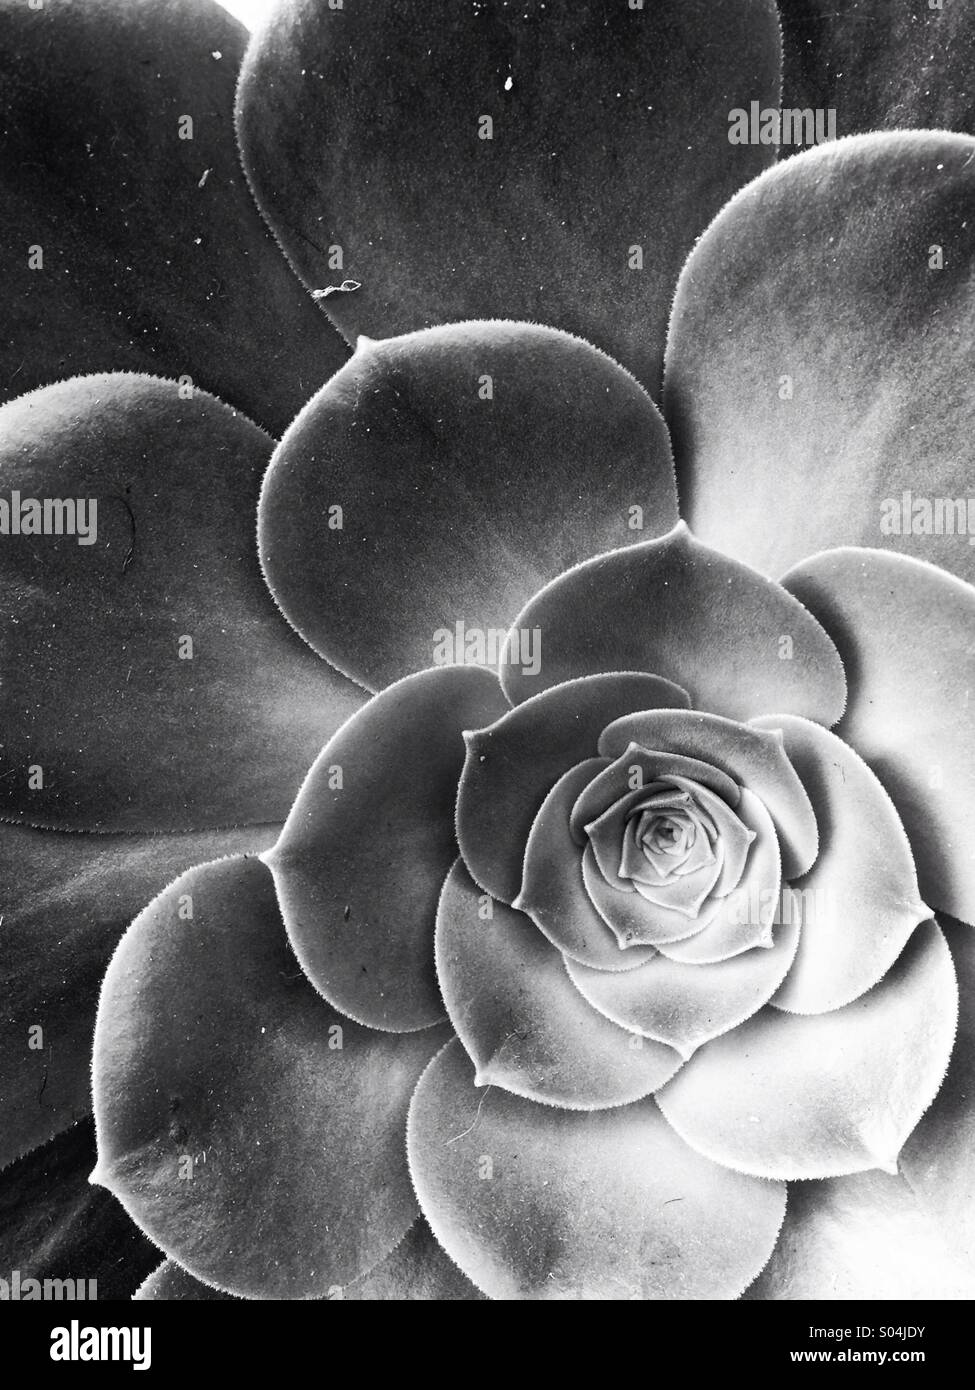 Succulent flower in black and white - Stock Image